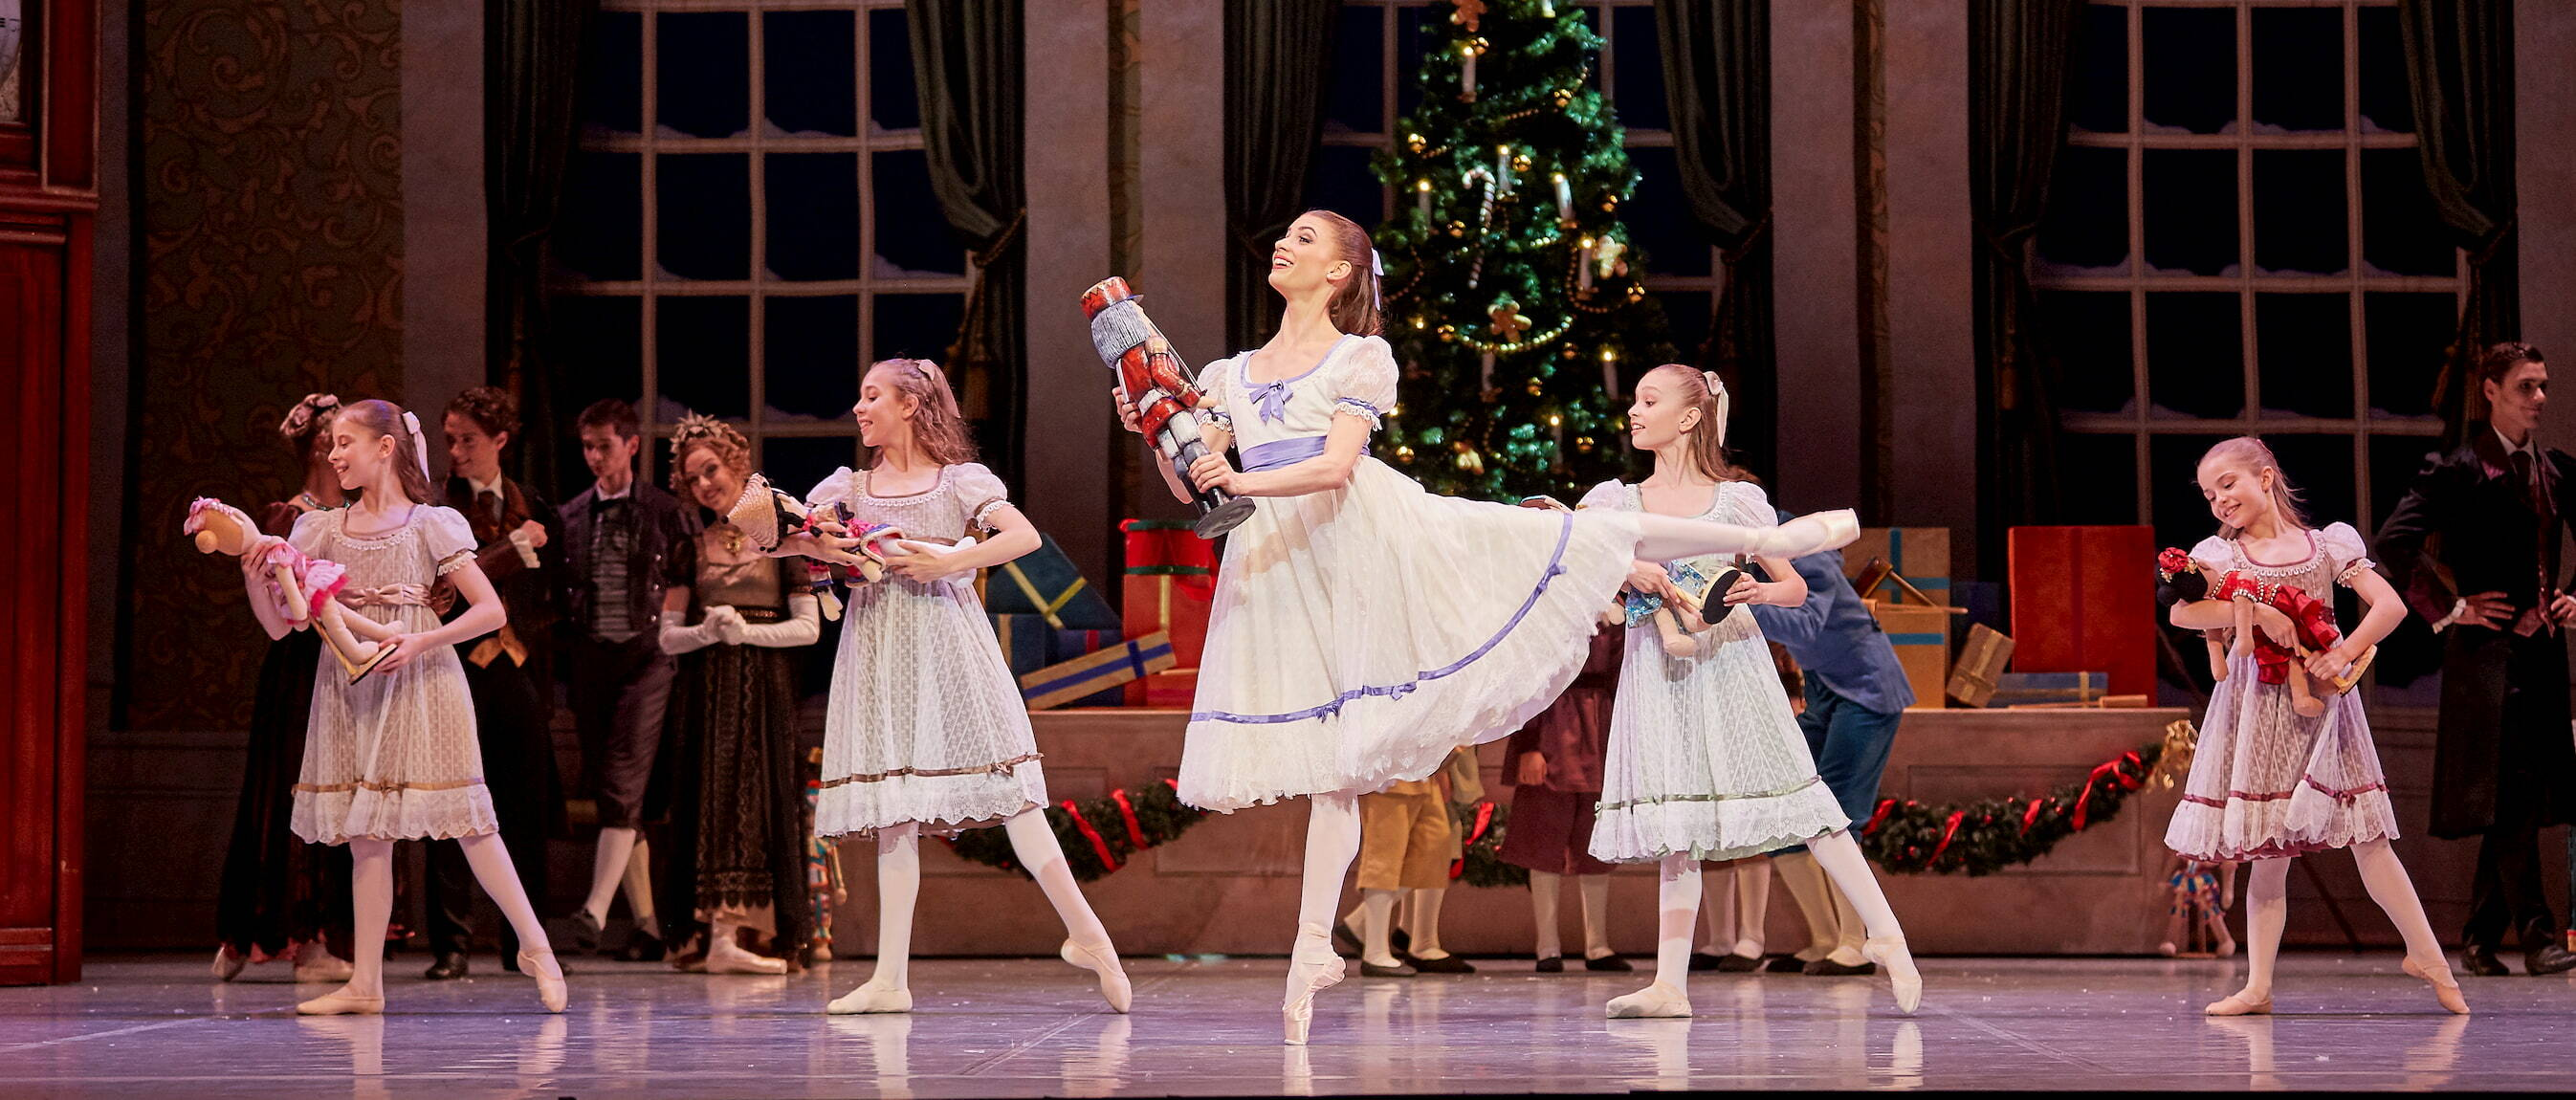 Carina Roberts as Clara with Child Guest Artists in The Nutcracker. Photo by Sergey Pevnev